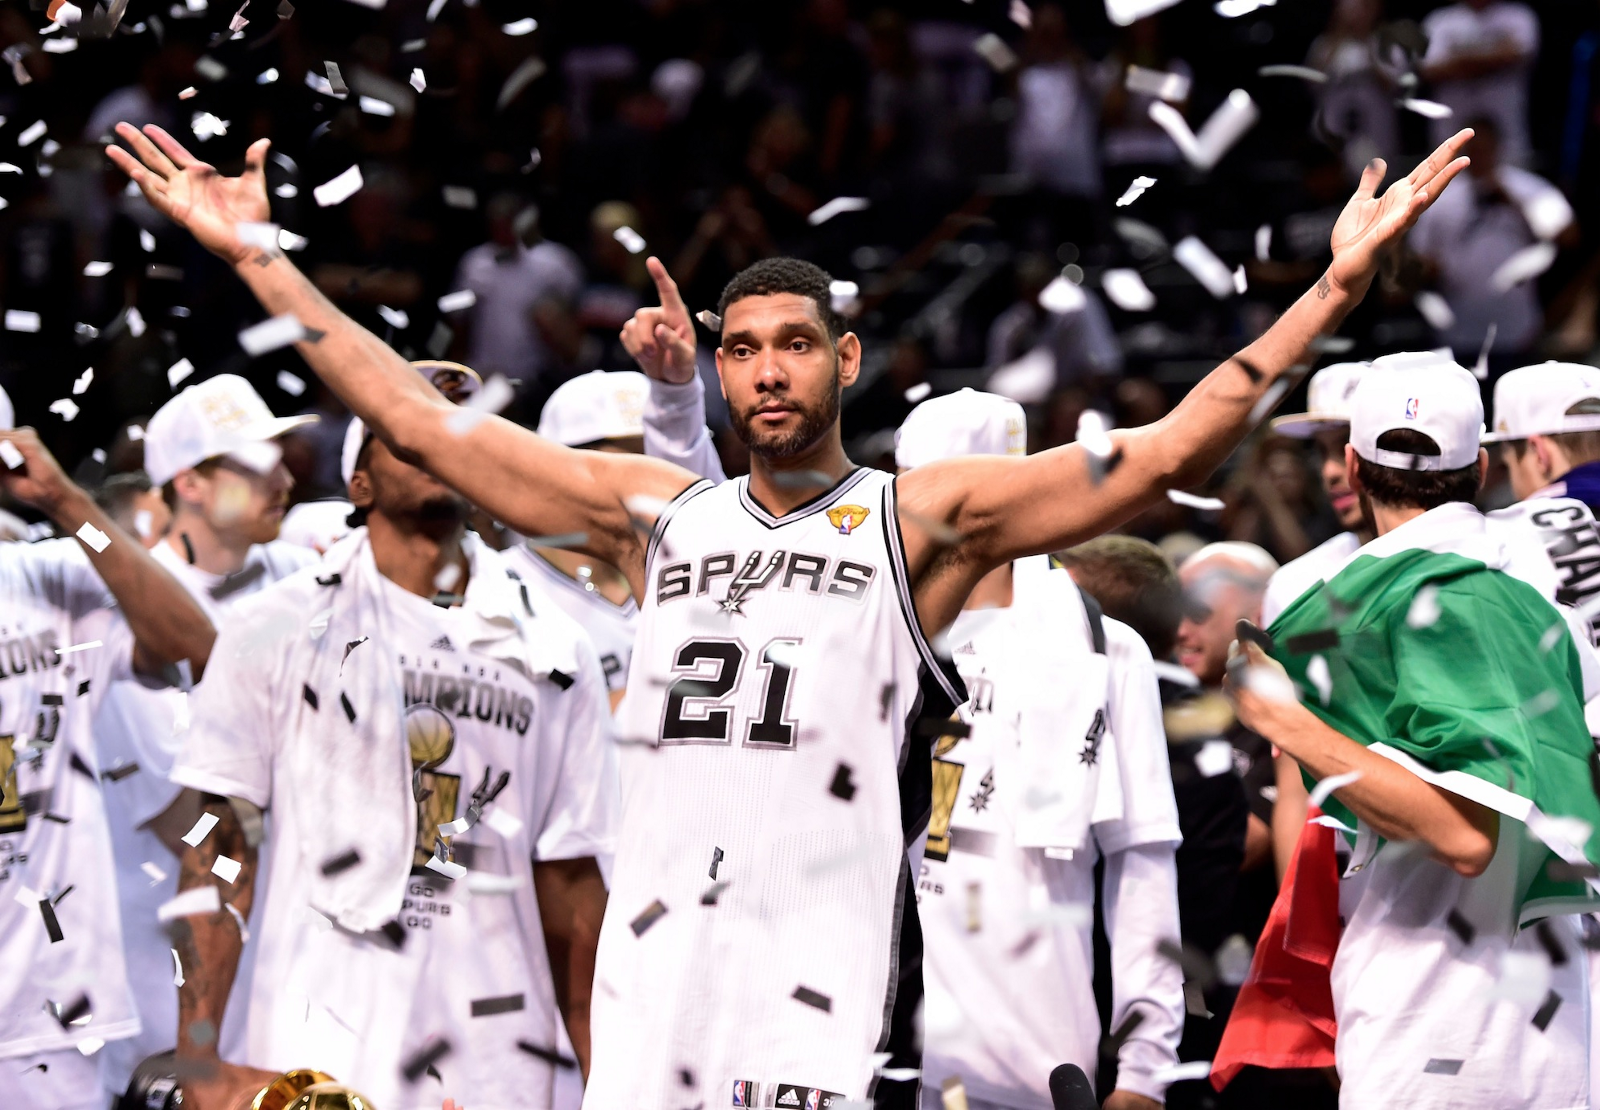 """""""You've got to stay ready, especially around here. That's what we preach, you'll get your opportunity whether it comes at the beginning or in the middle or in the end whenever it may be. When your time comes, you need to be ready to go because you're going to earn your minutes"""" - -Tim Duncan"""